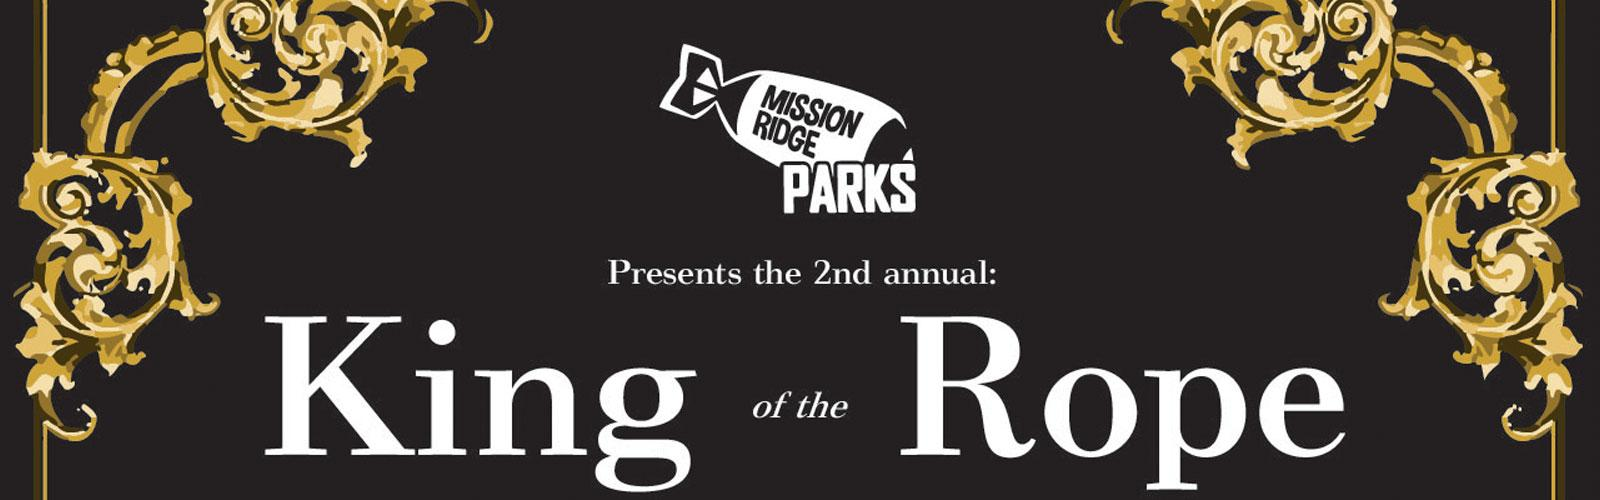 King Of The Rope event logo with Mission Ridge Parks logo included